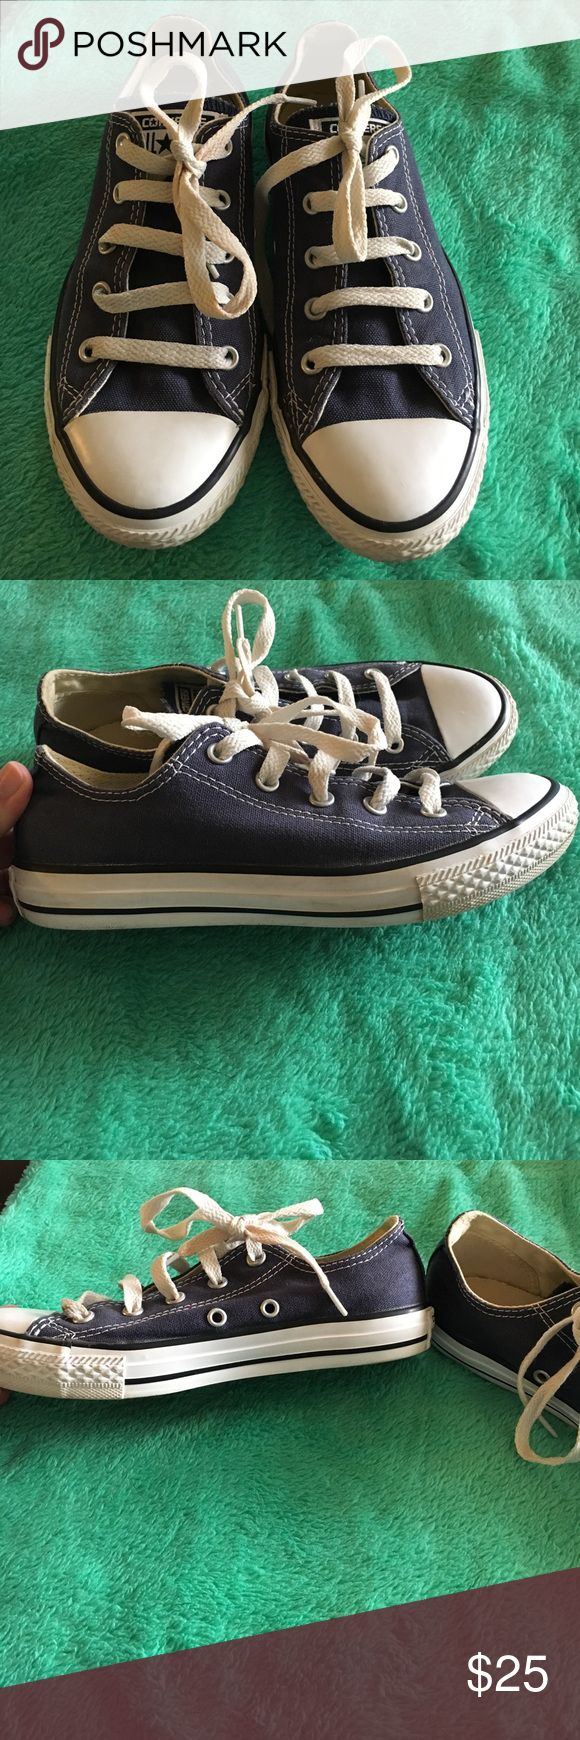 Kids size navy converse Kids size 2 navy converse. Bought from journeys and worn a few times but still great condition. I love them but they just hurt my feet from being to small. I wear a women's size 6 so these might fit a woman's size 5 better. Converse Shoes Sneakers